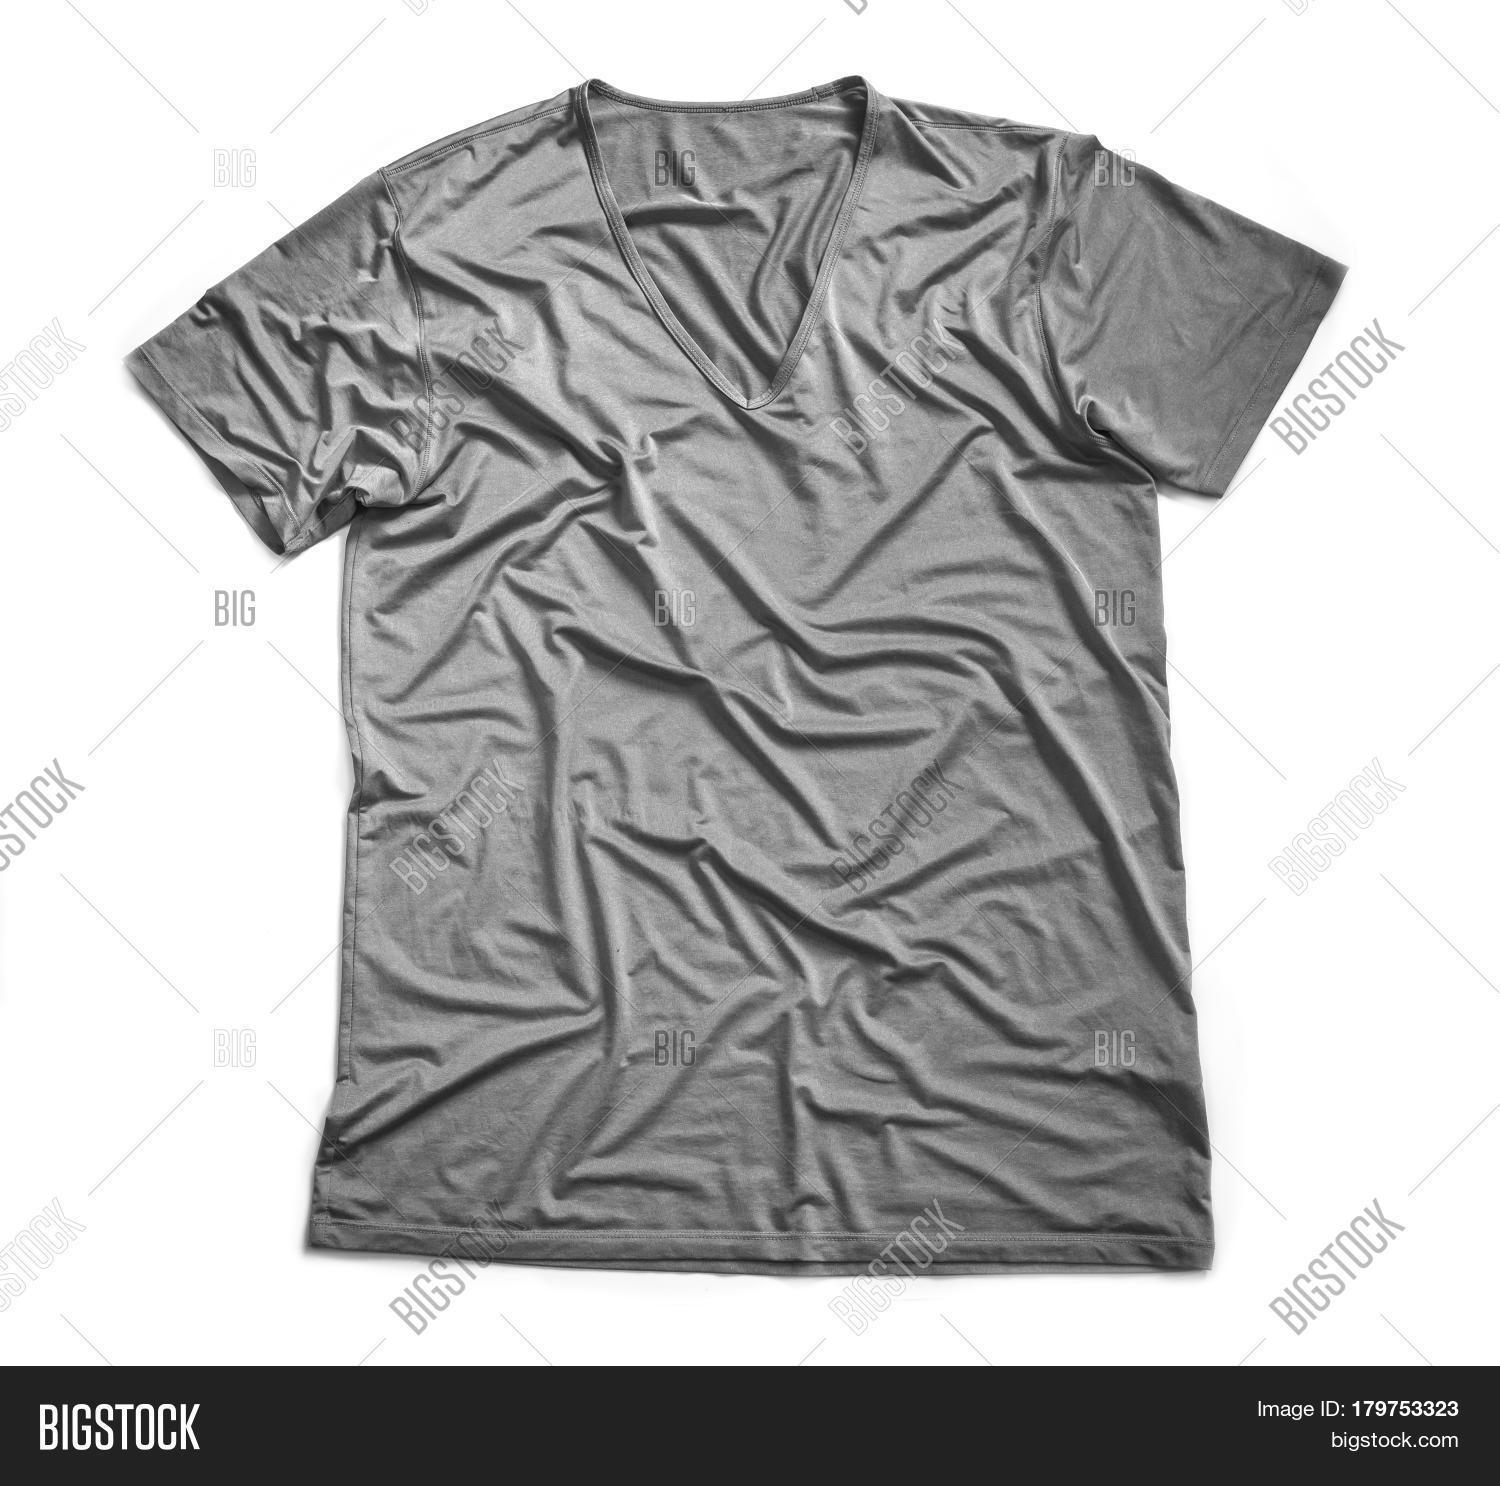 cf2cca62e Gray Wrinkled T-shirt Image & Photo (Free Trial) | Bigstock